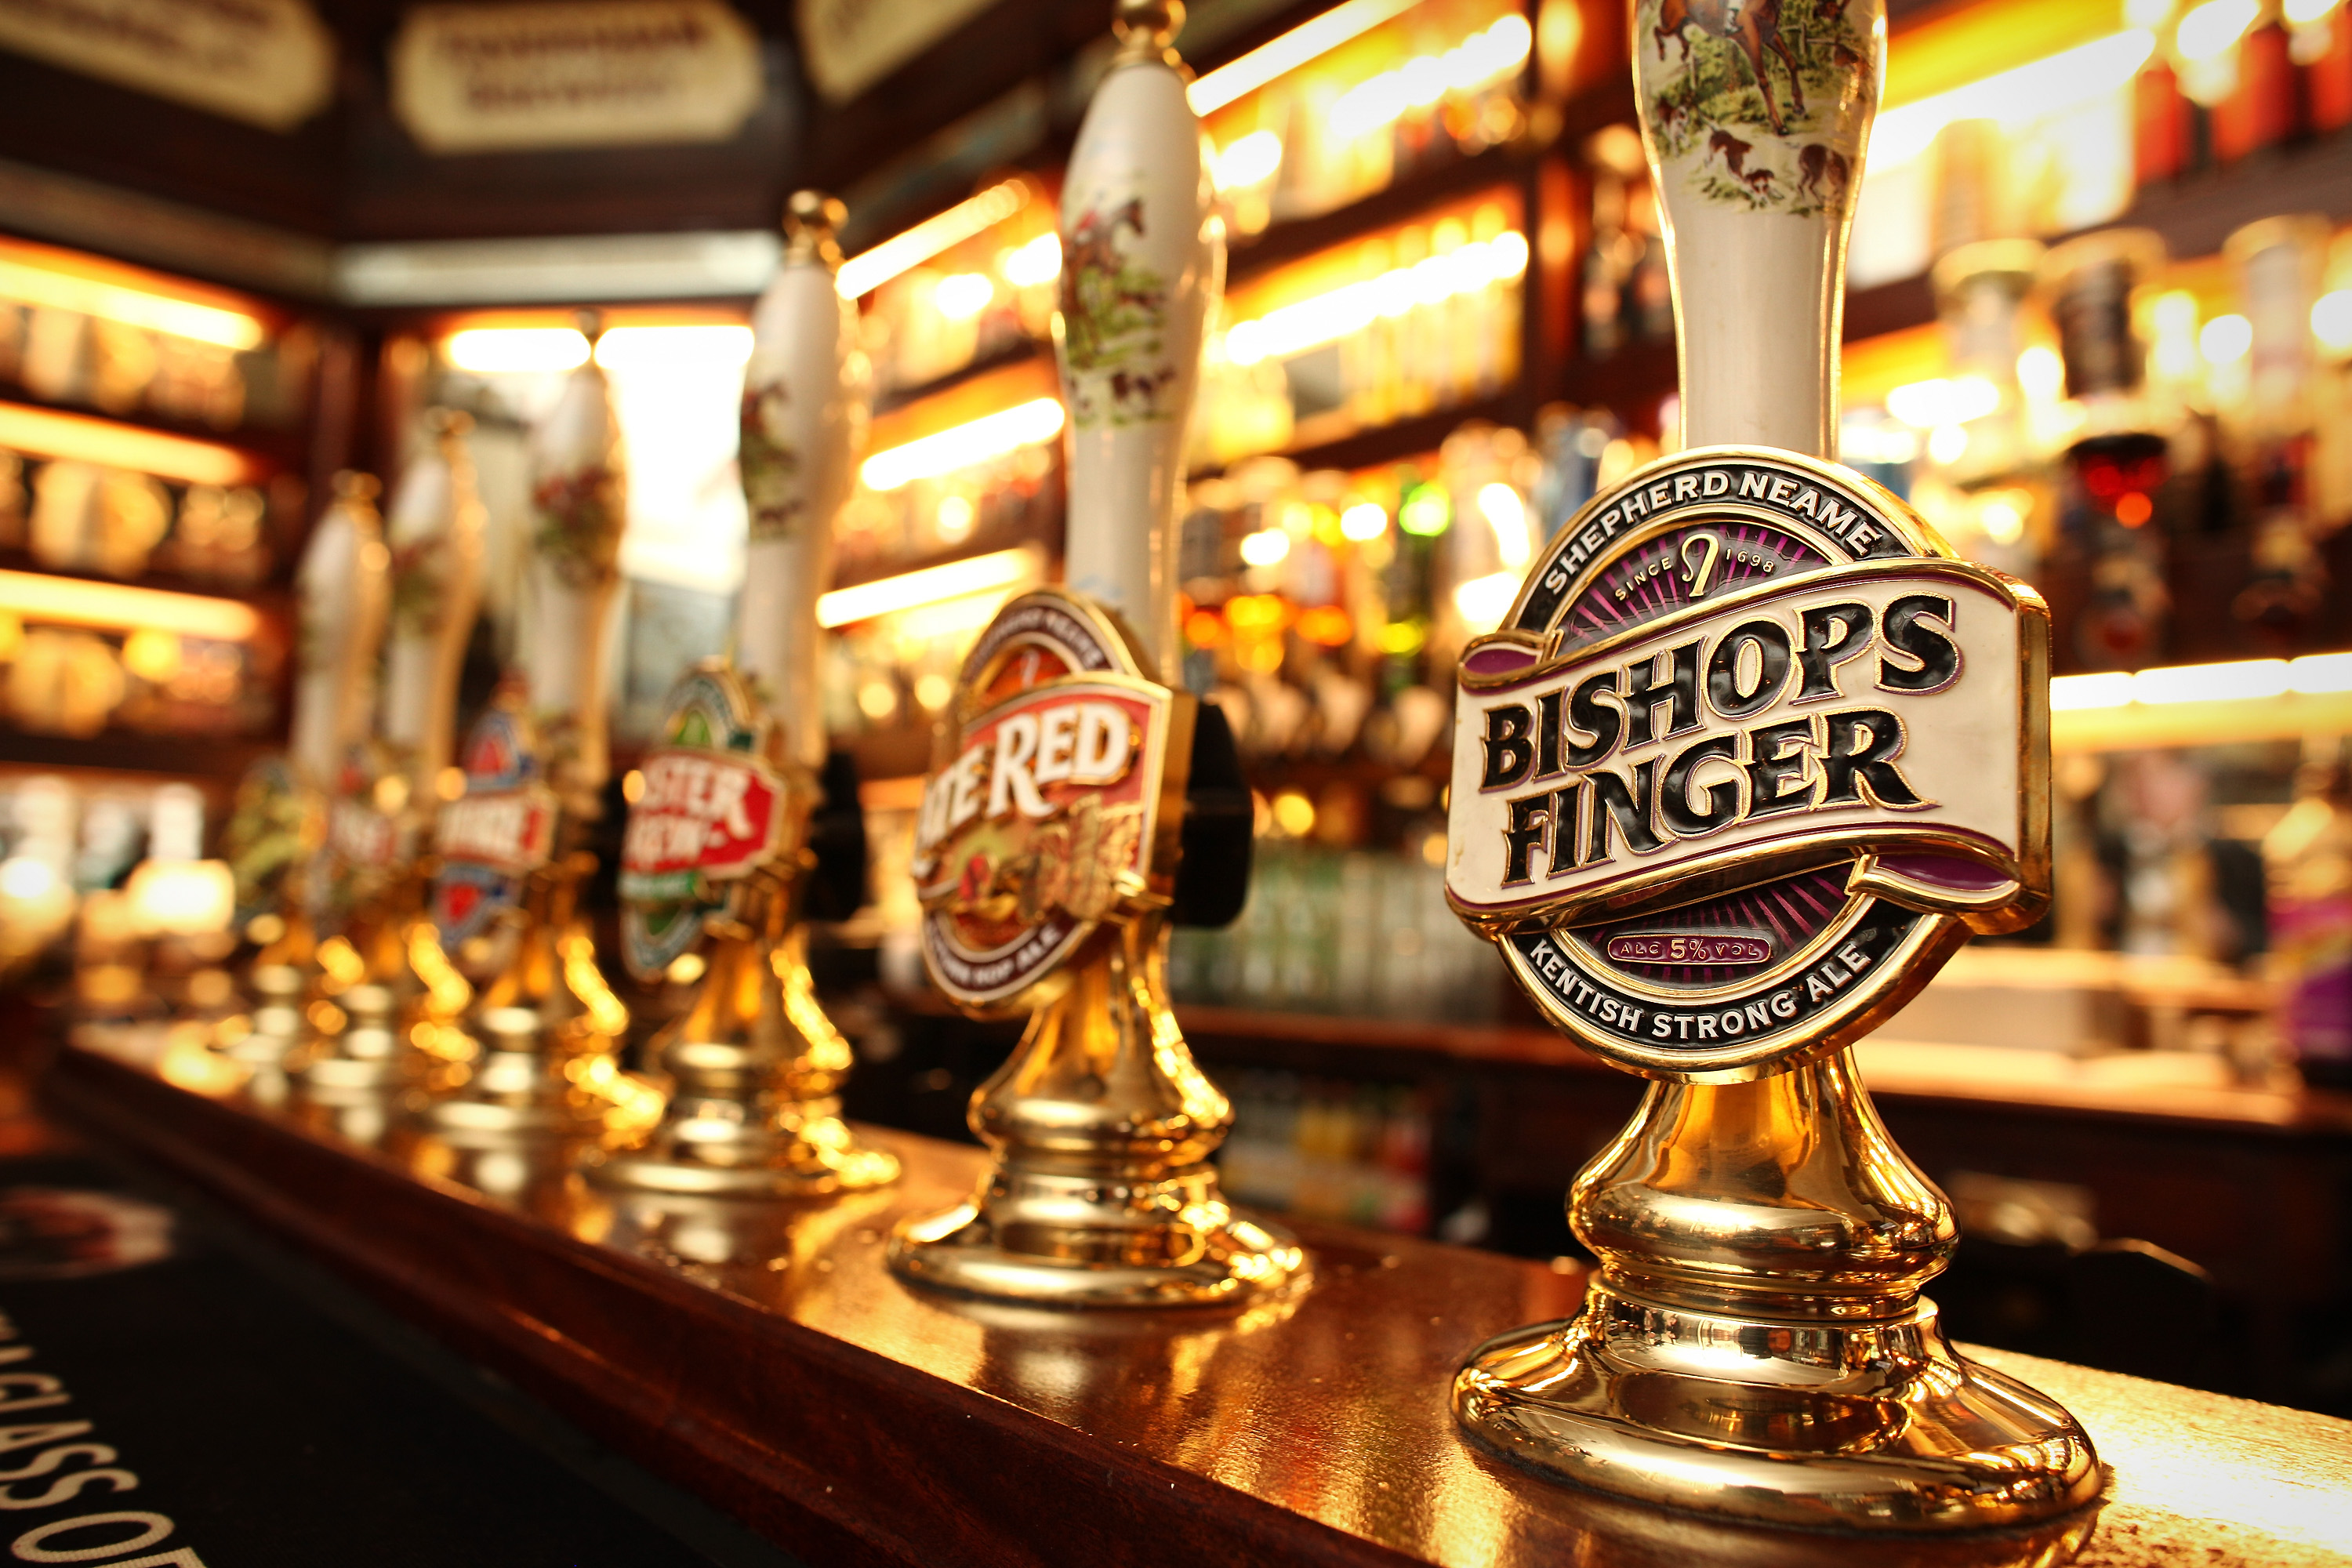 LONDON, ENGLAND - MARCH 11:  Beer pumps in a pub on March 11, 2011 in London, England.  (Photo by Peter Macdiarmid/Getty Images)